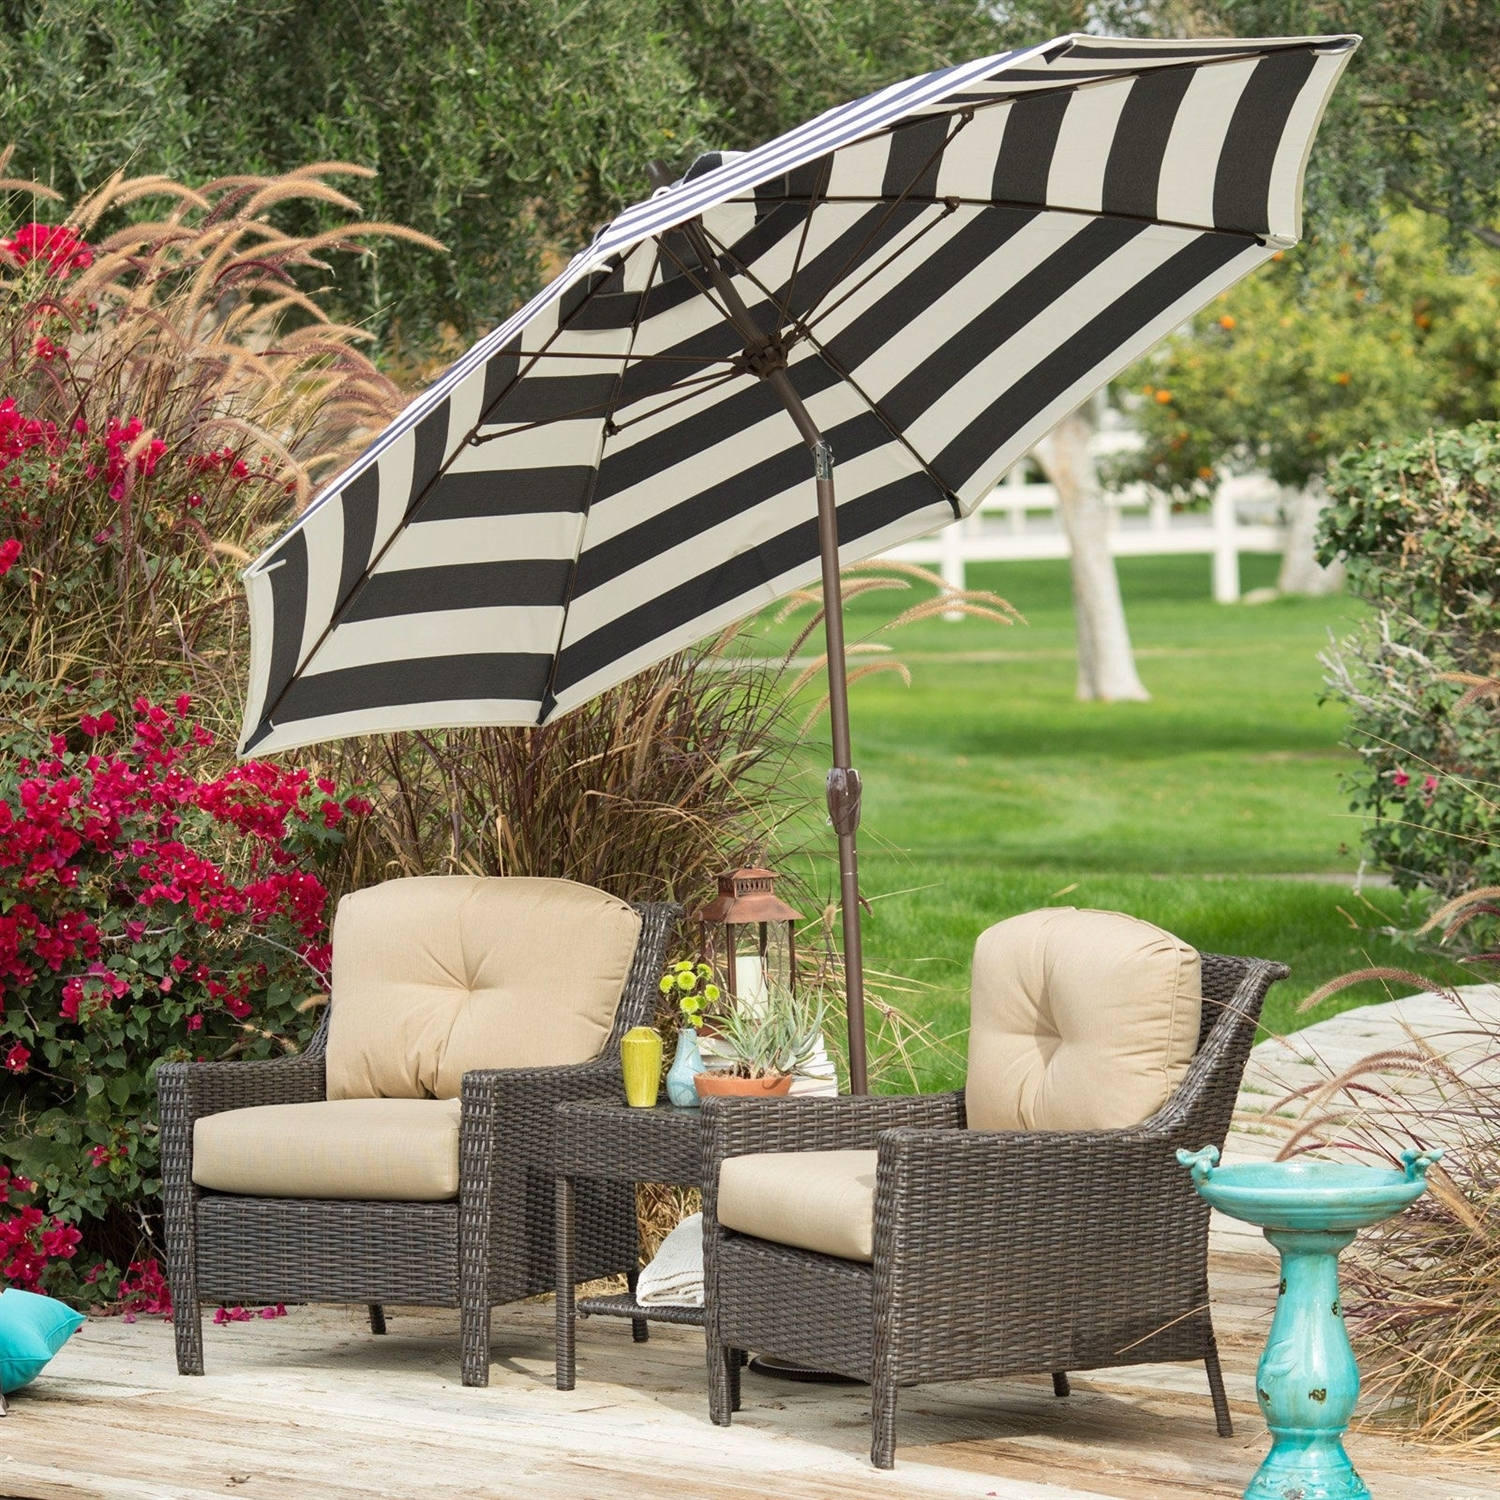 Trendy Stylish 9 Ft Market Patio Umbrella With Crank And Tilt In Dark Navy Inside 9 Ft Patio Umbrellas (View 17 of 20)